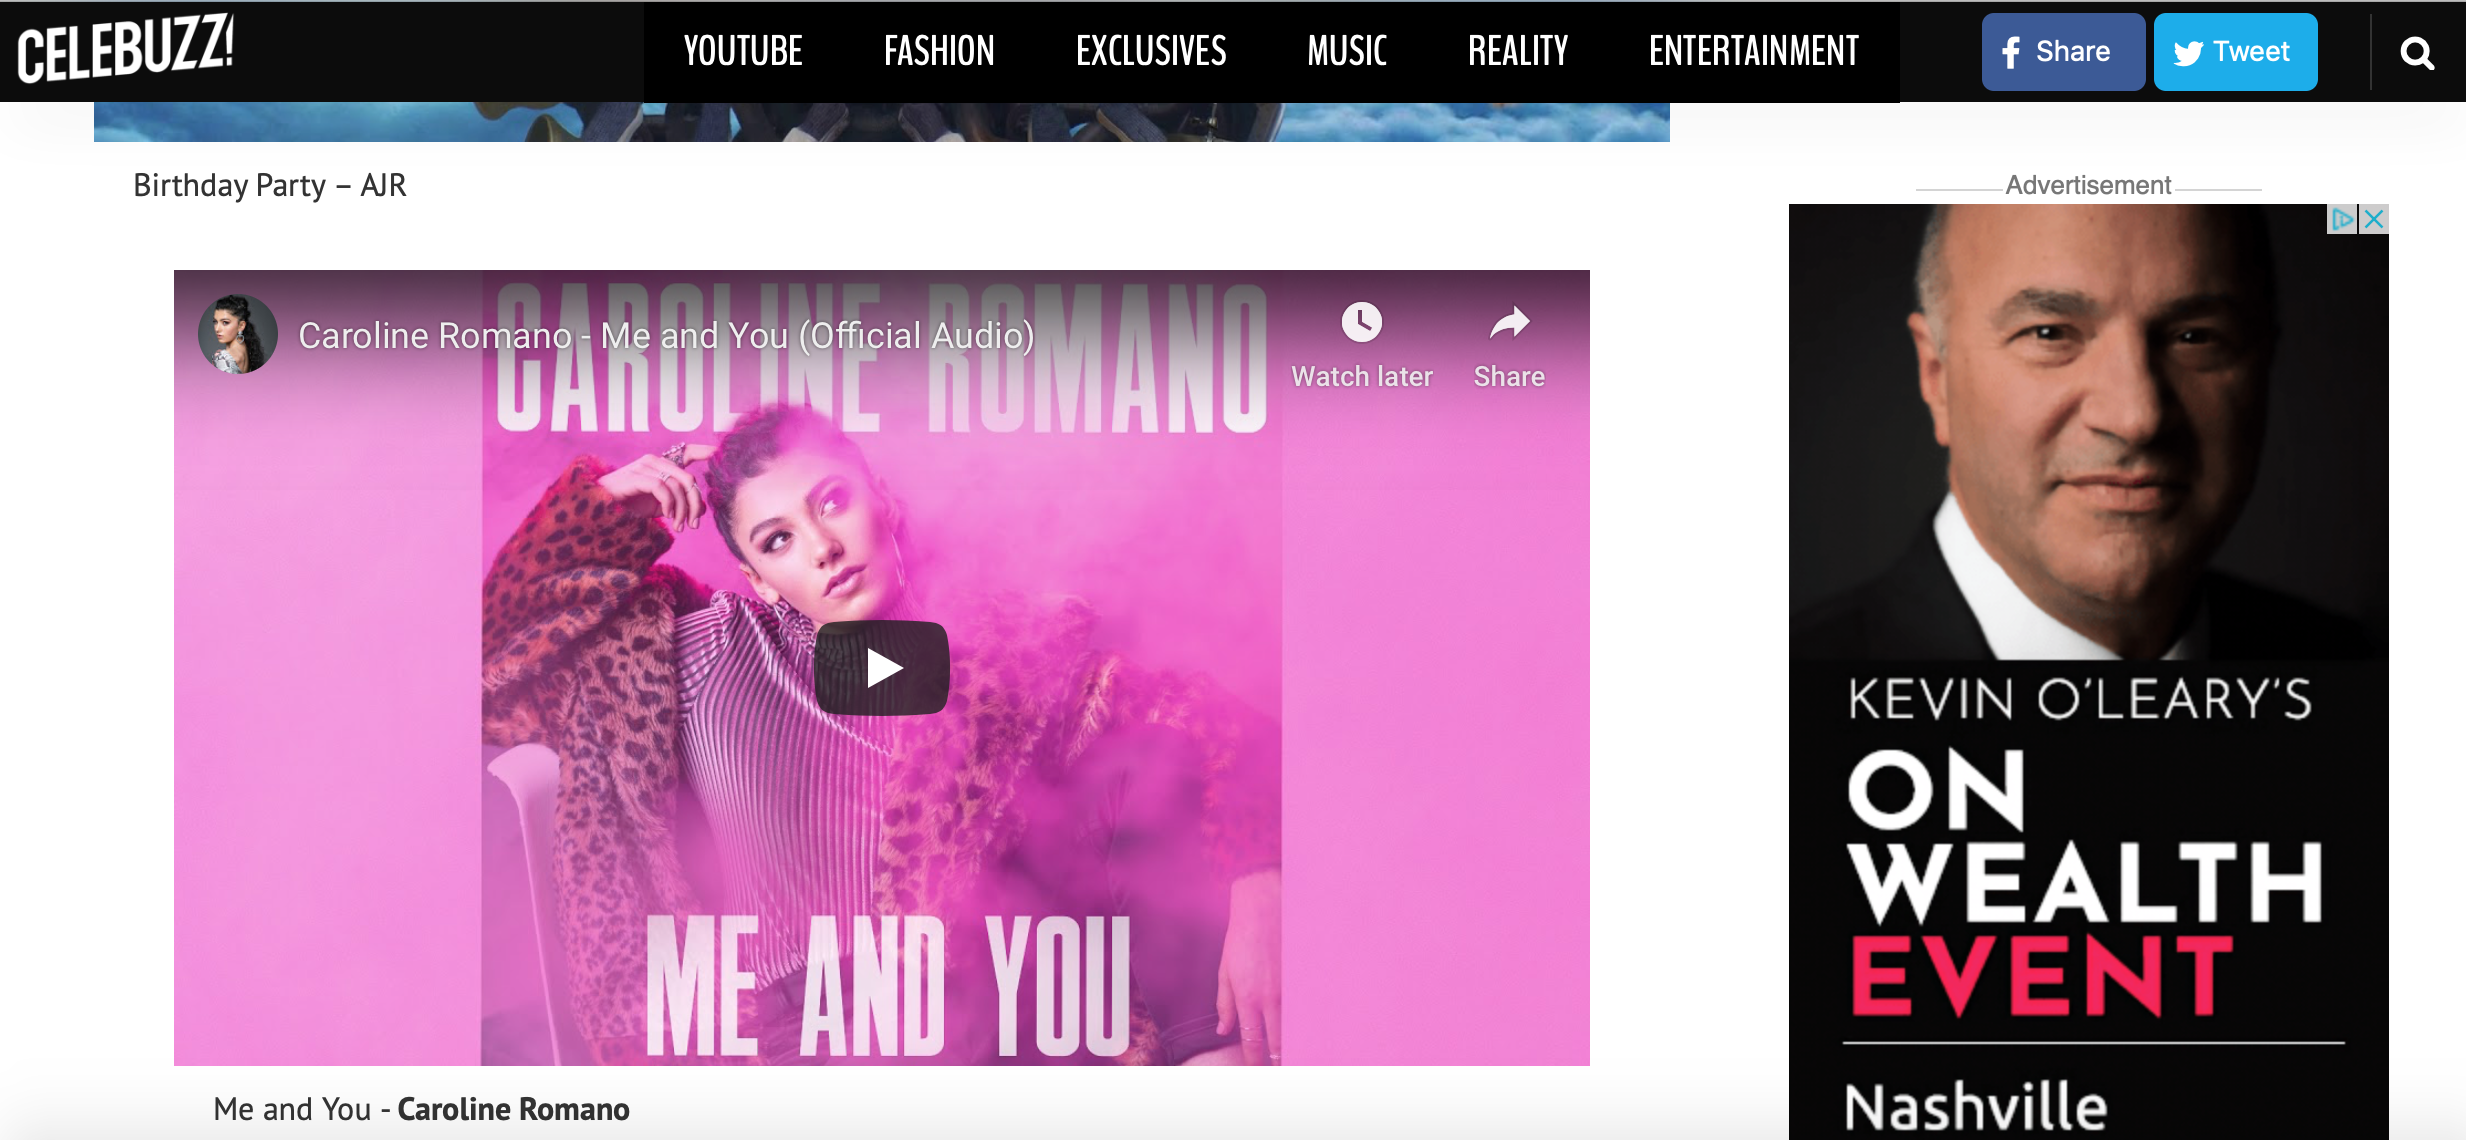 """Celebuzz - """"Me and You"""" New Music Friday Inclusion"""